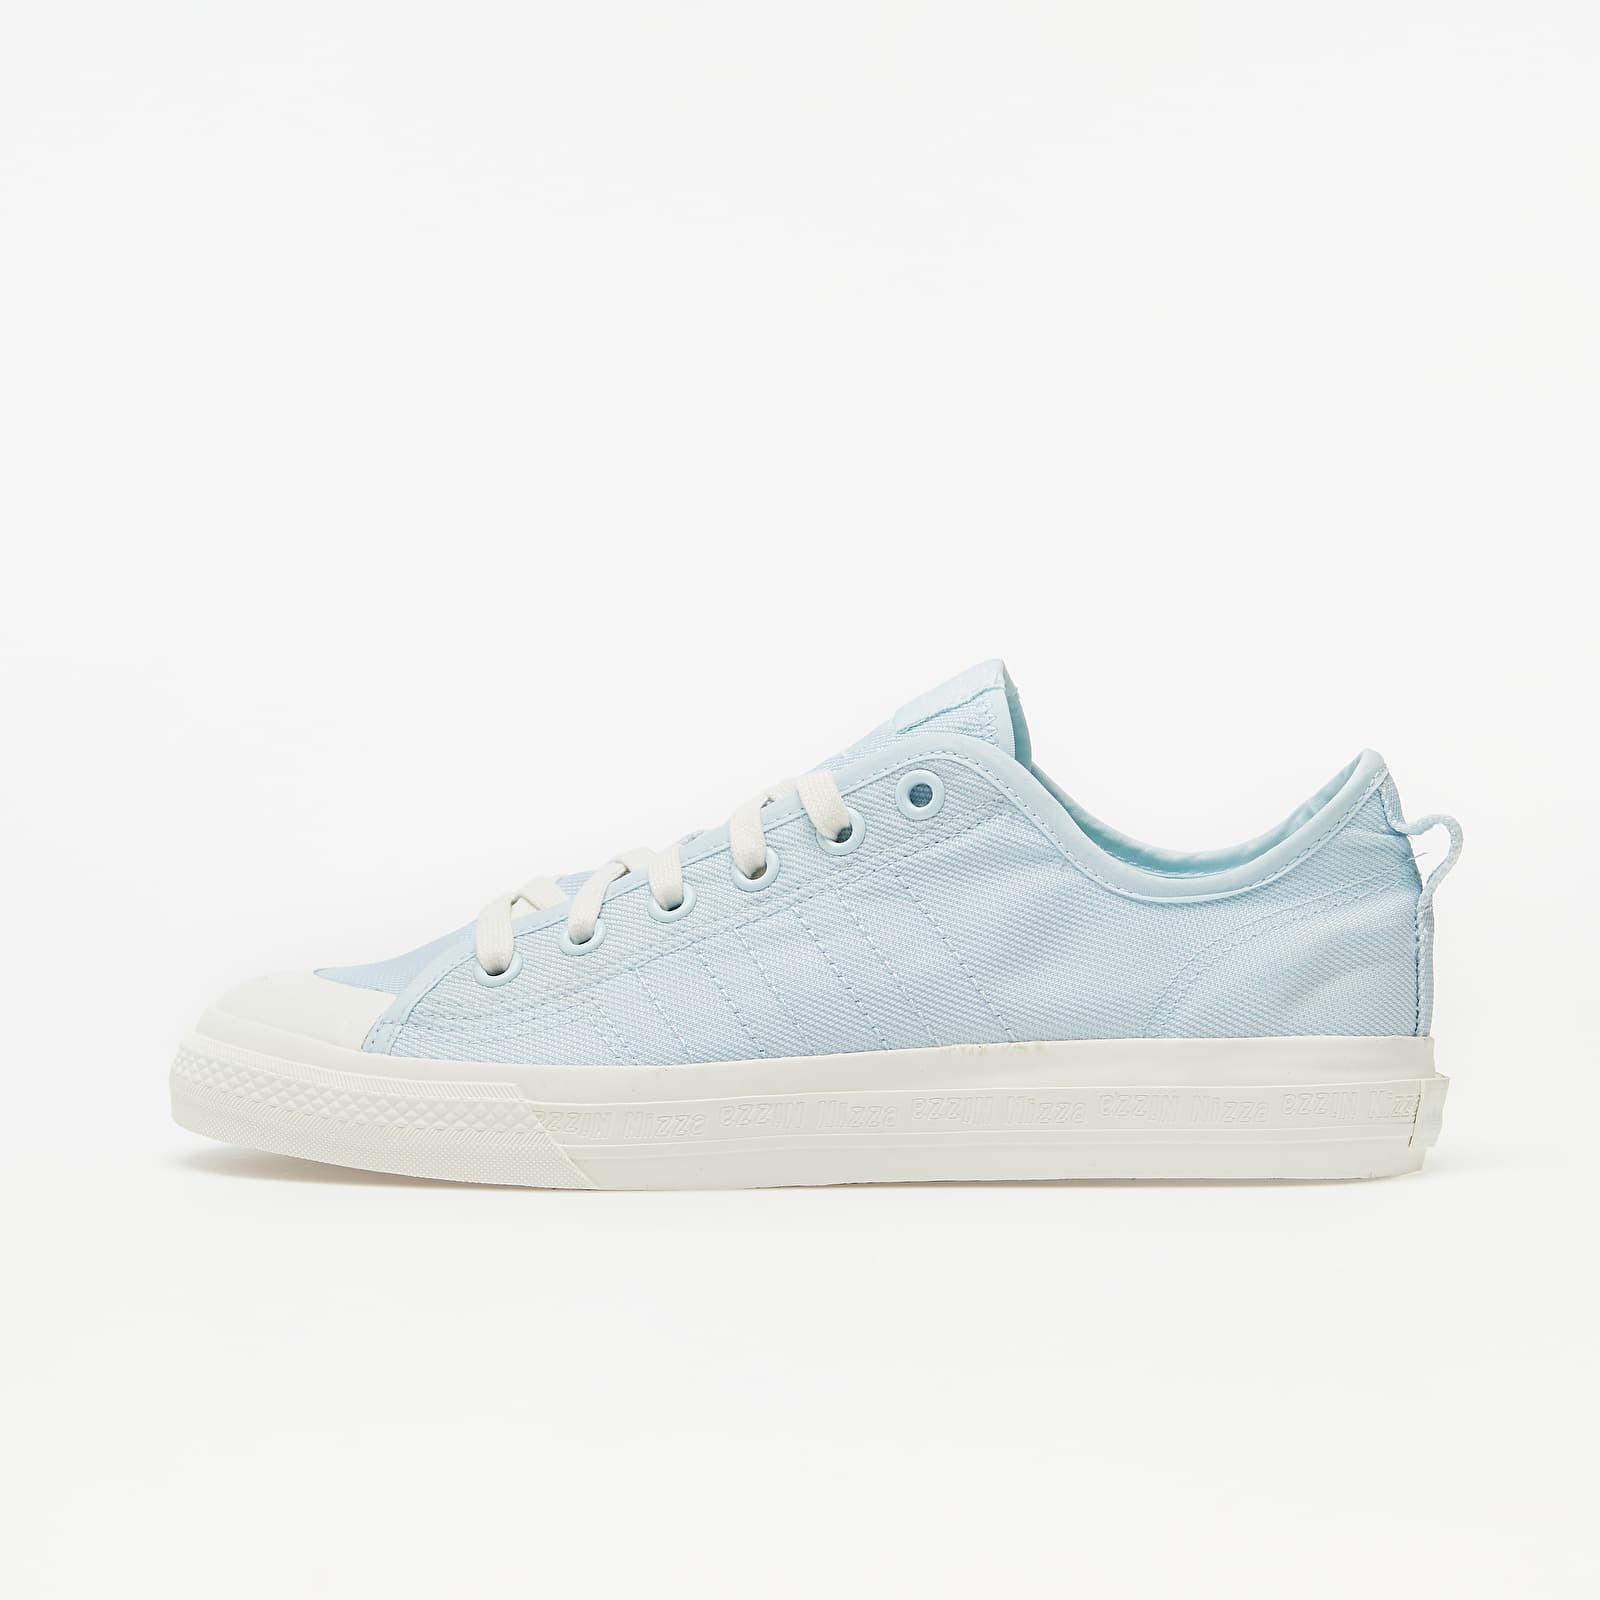 Chaussures et baskets homme adidas Nizza Rf Sky Tint/ Off White/ Core Brown